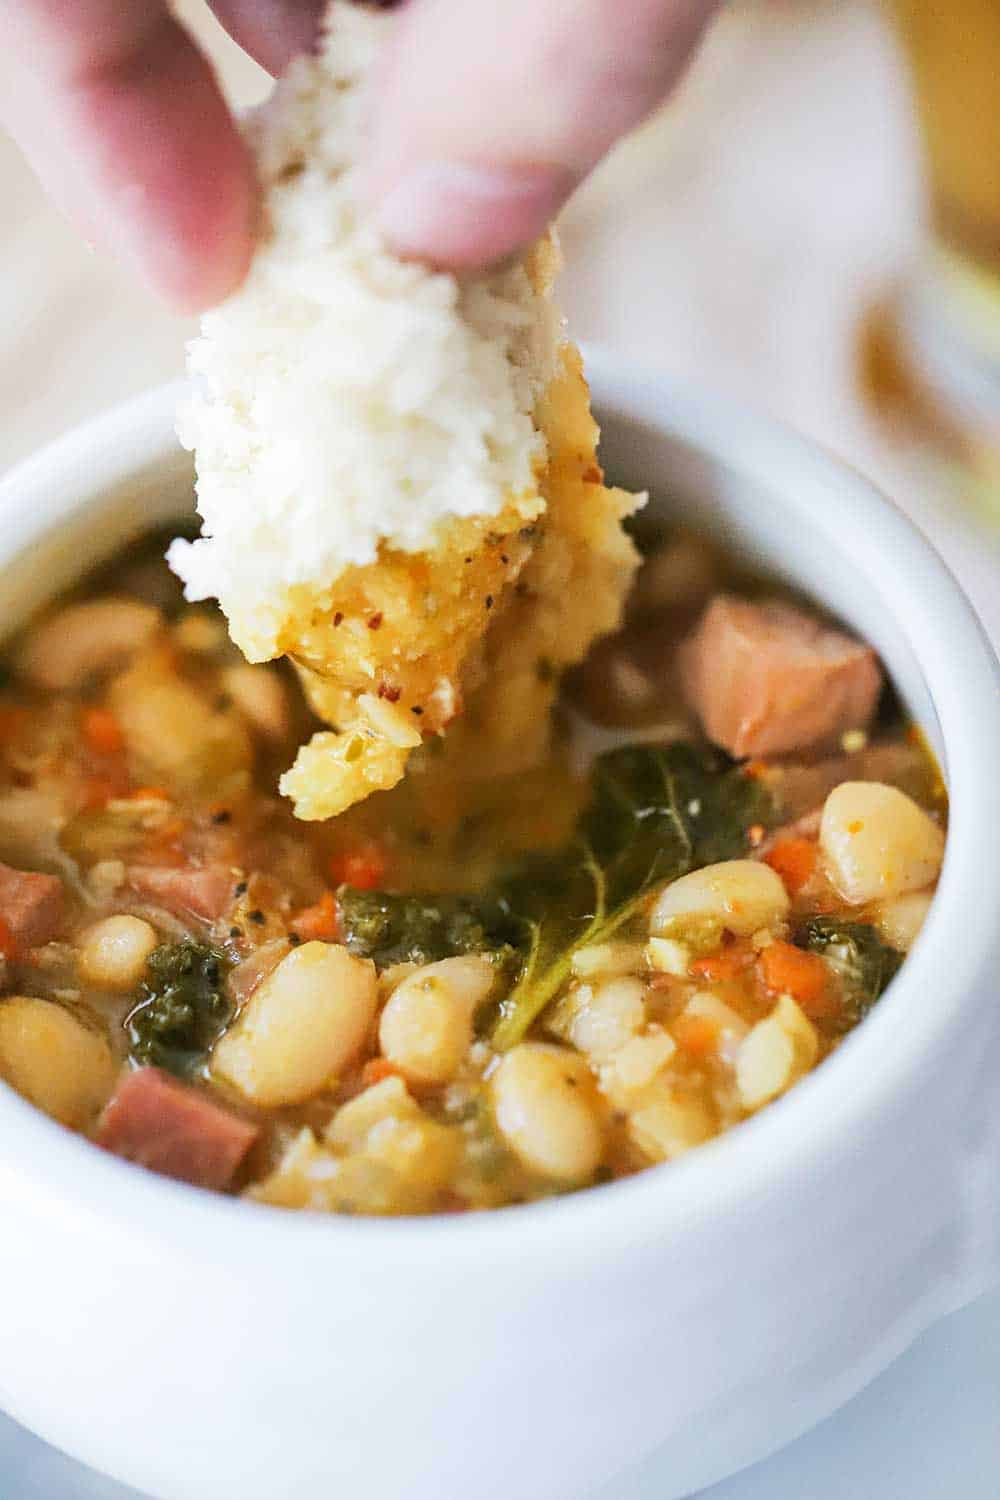 A hand dipping a torn piece of bread dipping into a bowl of smoked sausage and white bean stew.